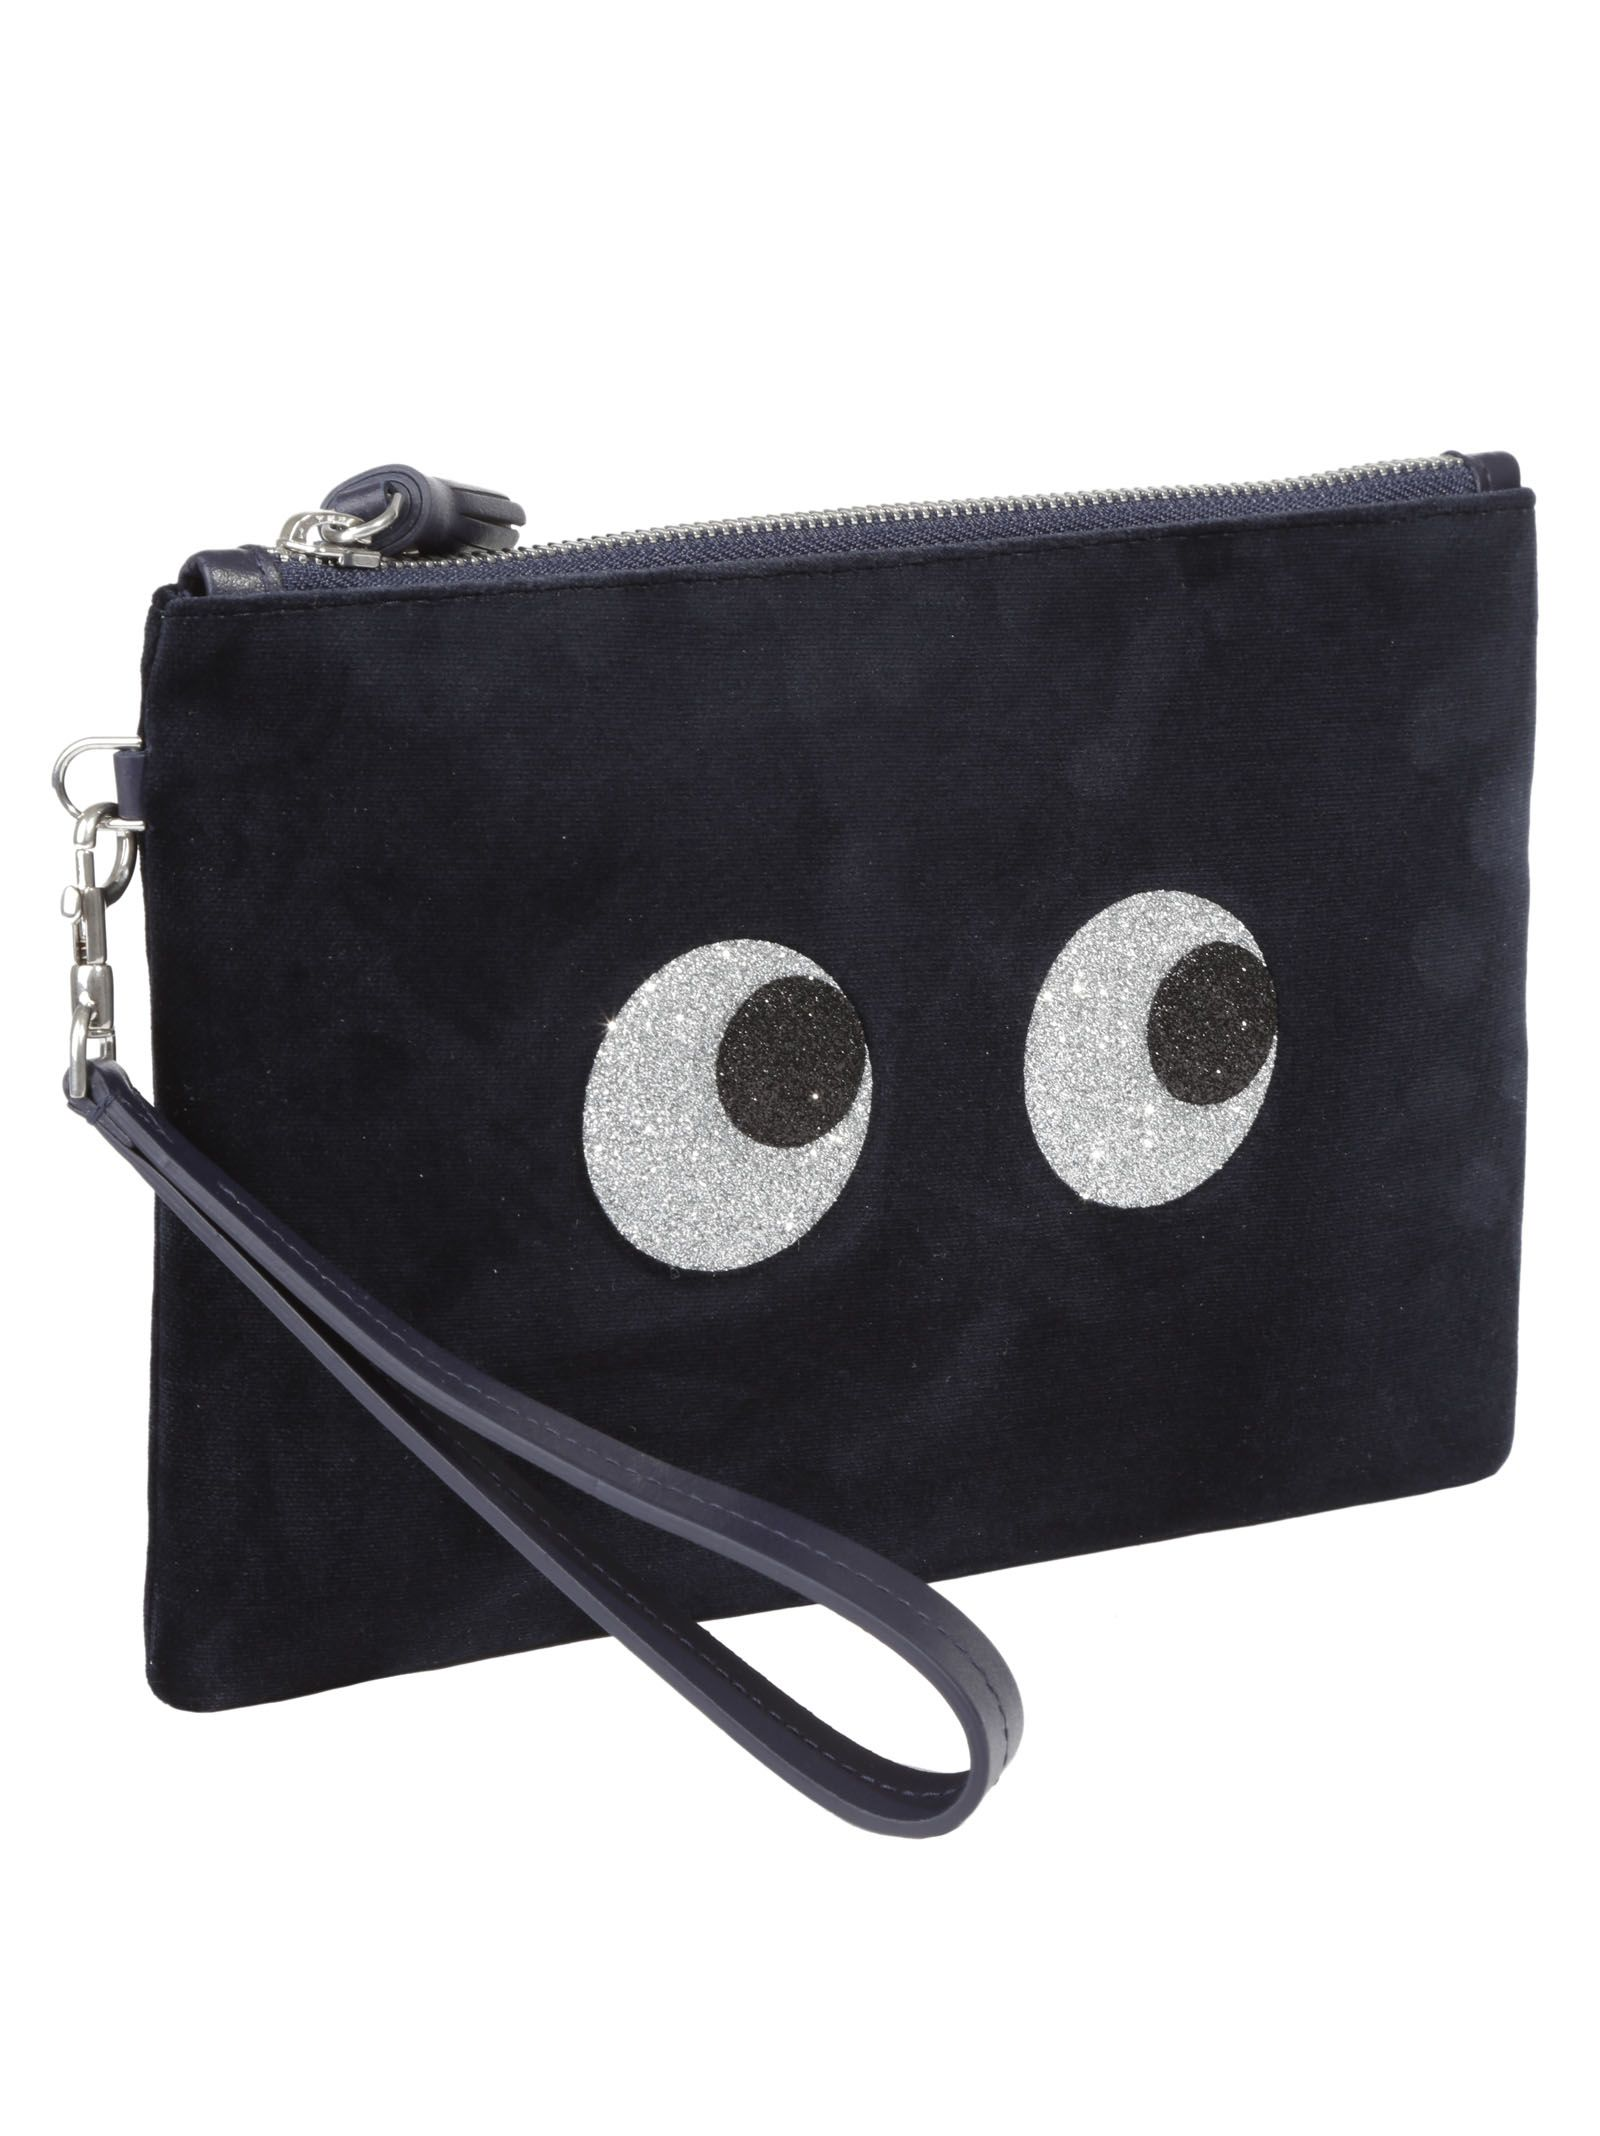 Anya Hindmarch Eyes Zip-top Pouch